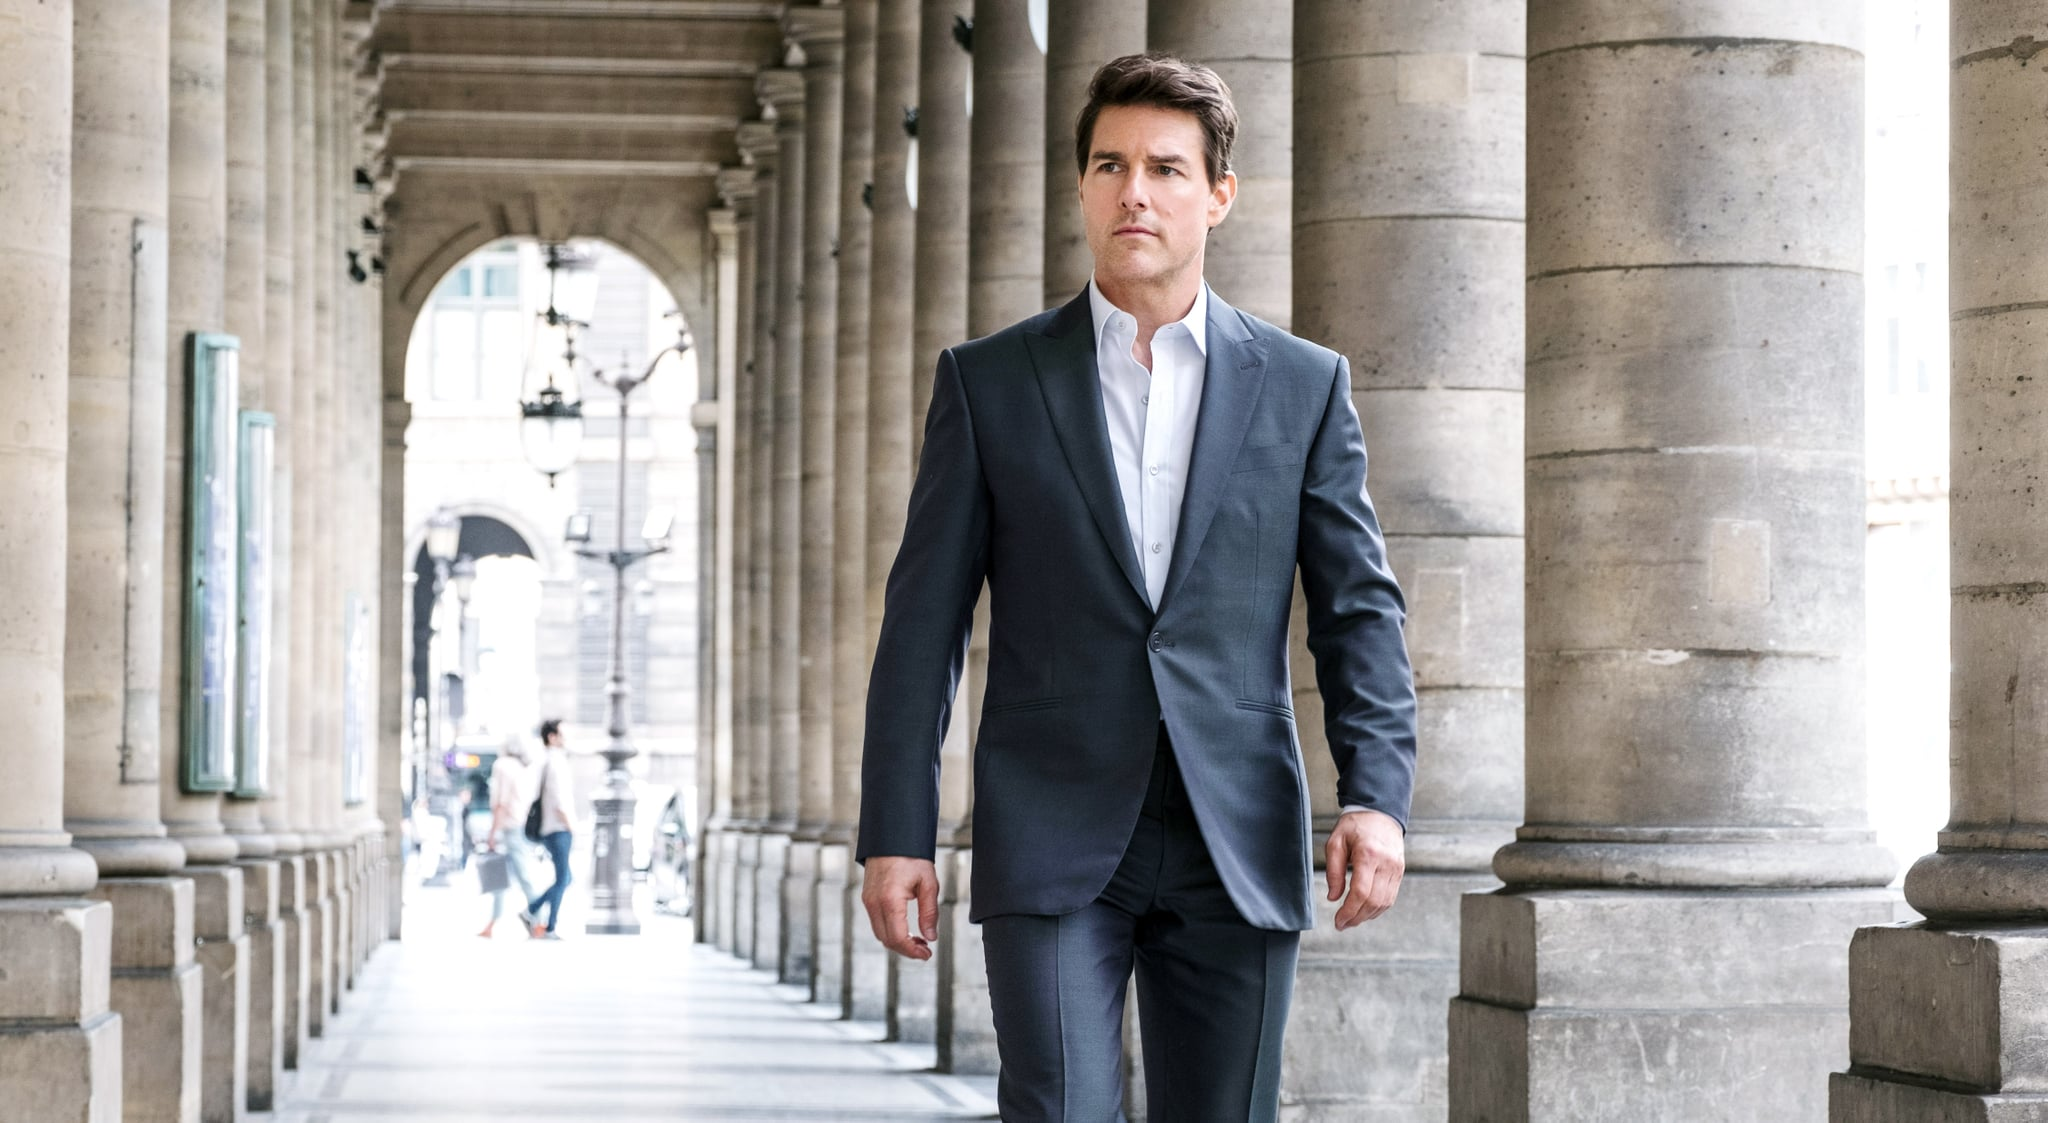 MISSION: IMPOSSIBLE - FALLOUT, Tom Cruise, 2018. ph: David James / Paramount /Courtesy Everett Collection